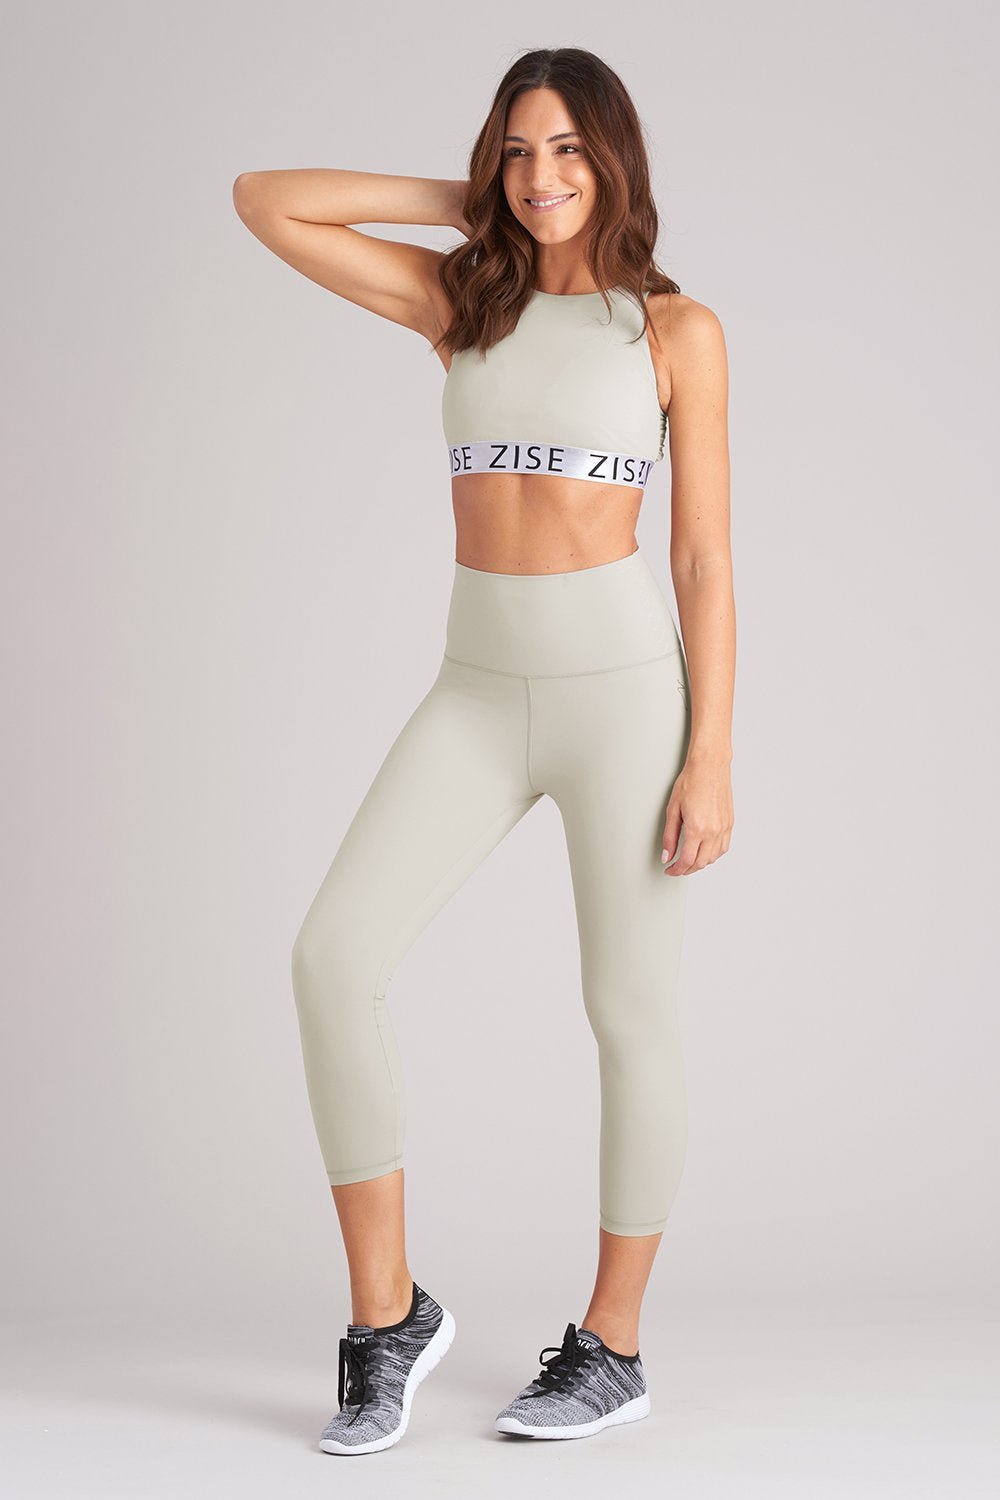 Zise Gigi Deep Waistband 7/8 Leggings - BLOCH US